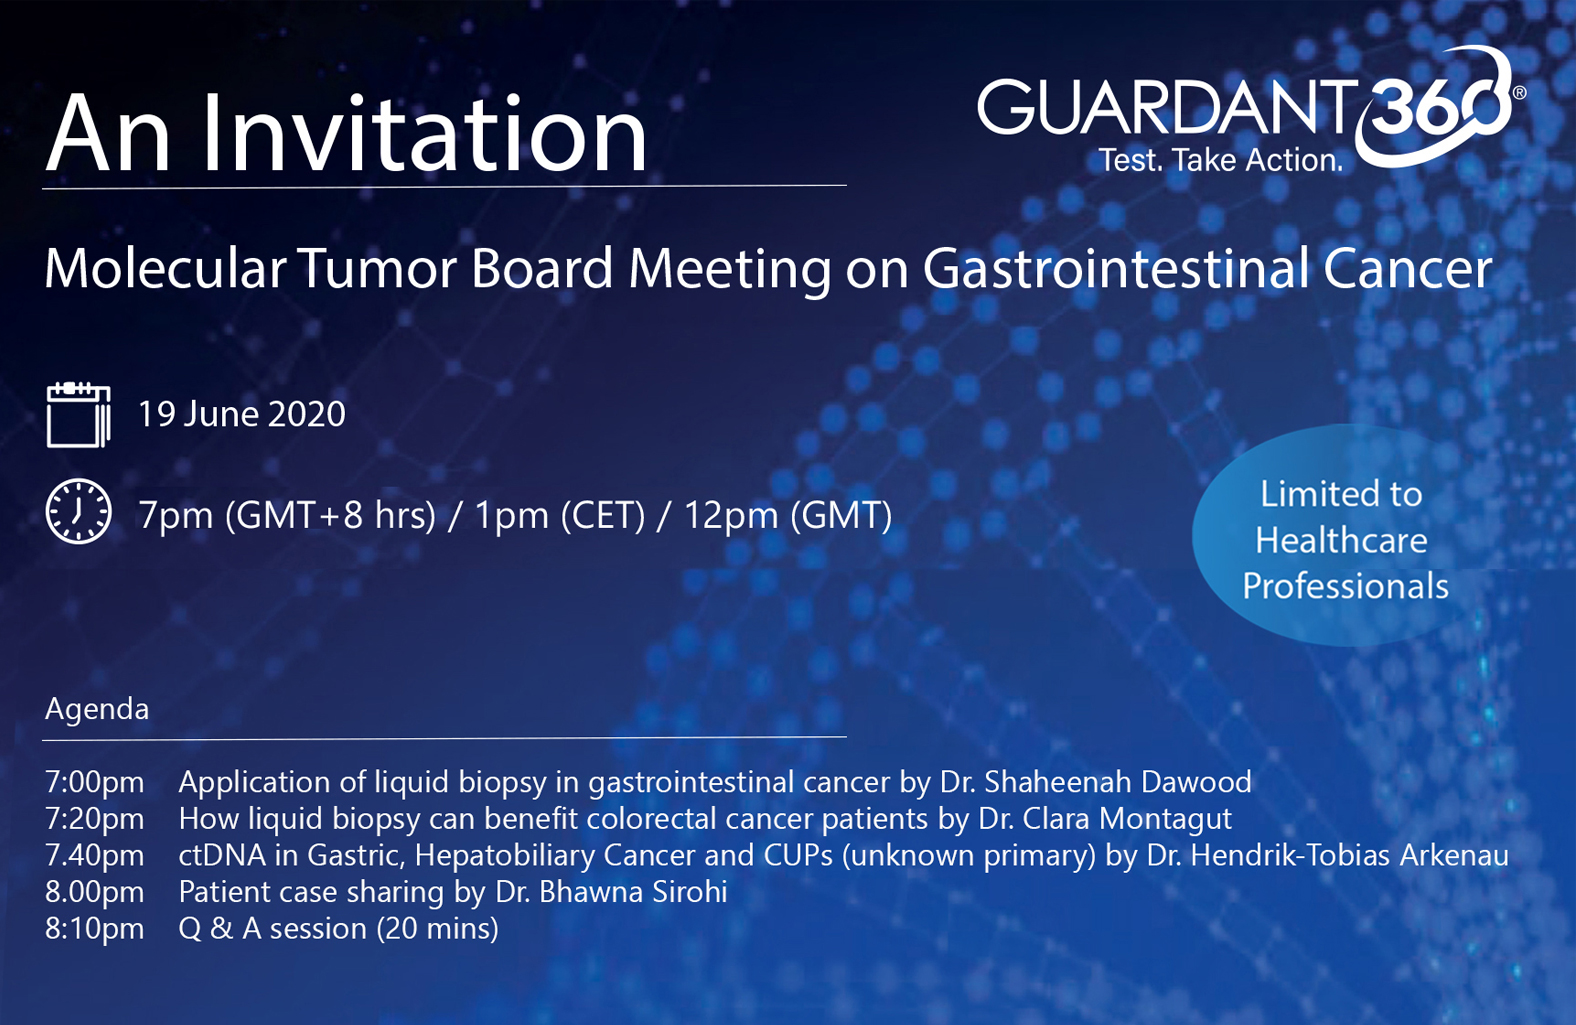 Molecular Tumor Board Webinar on Gastrointestinal Cancer